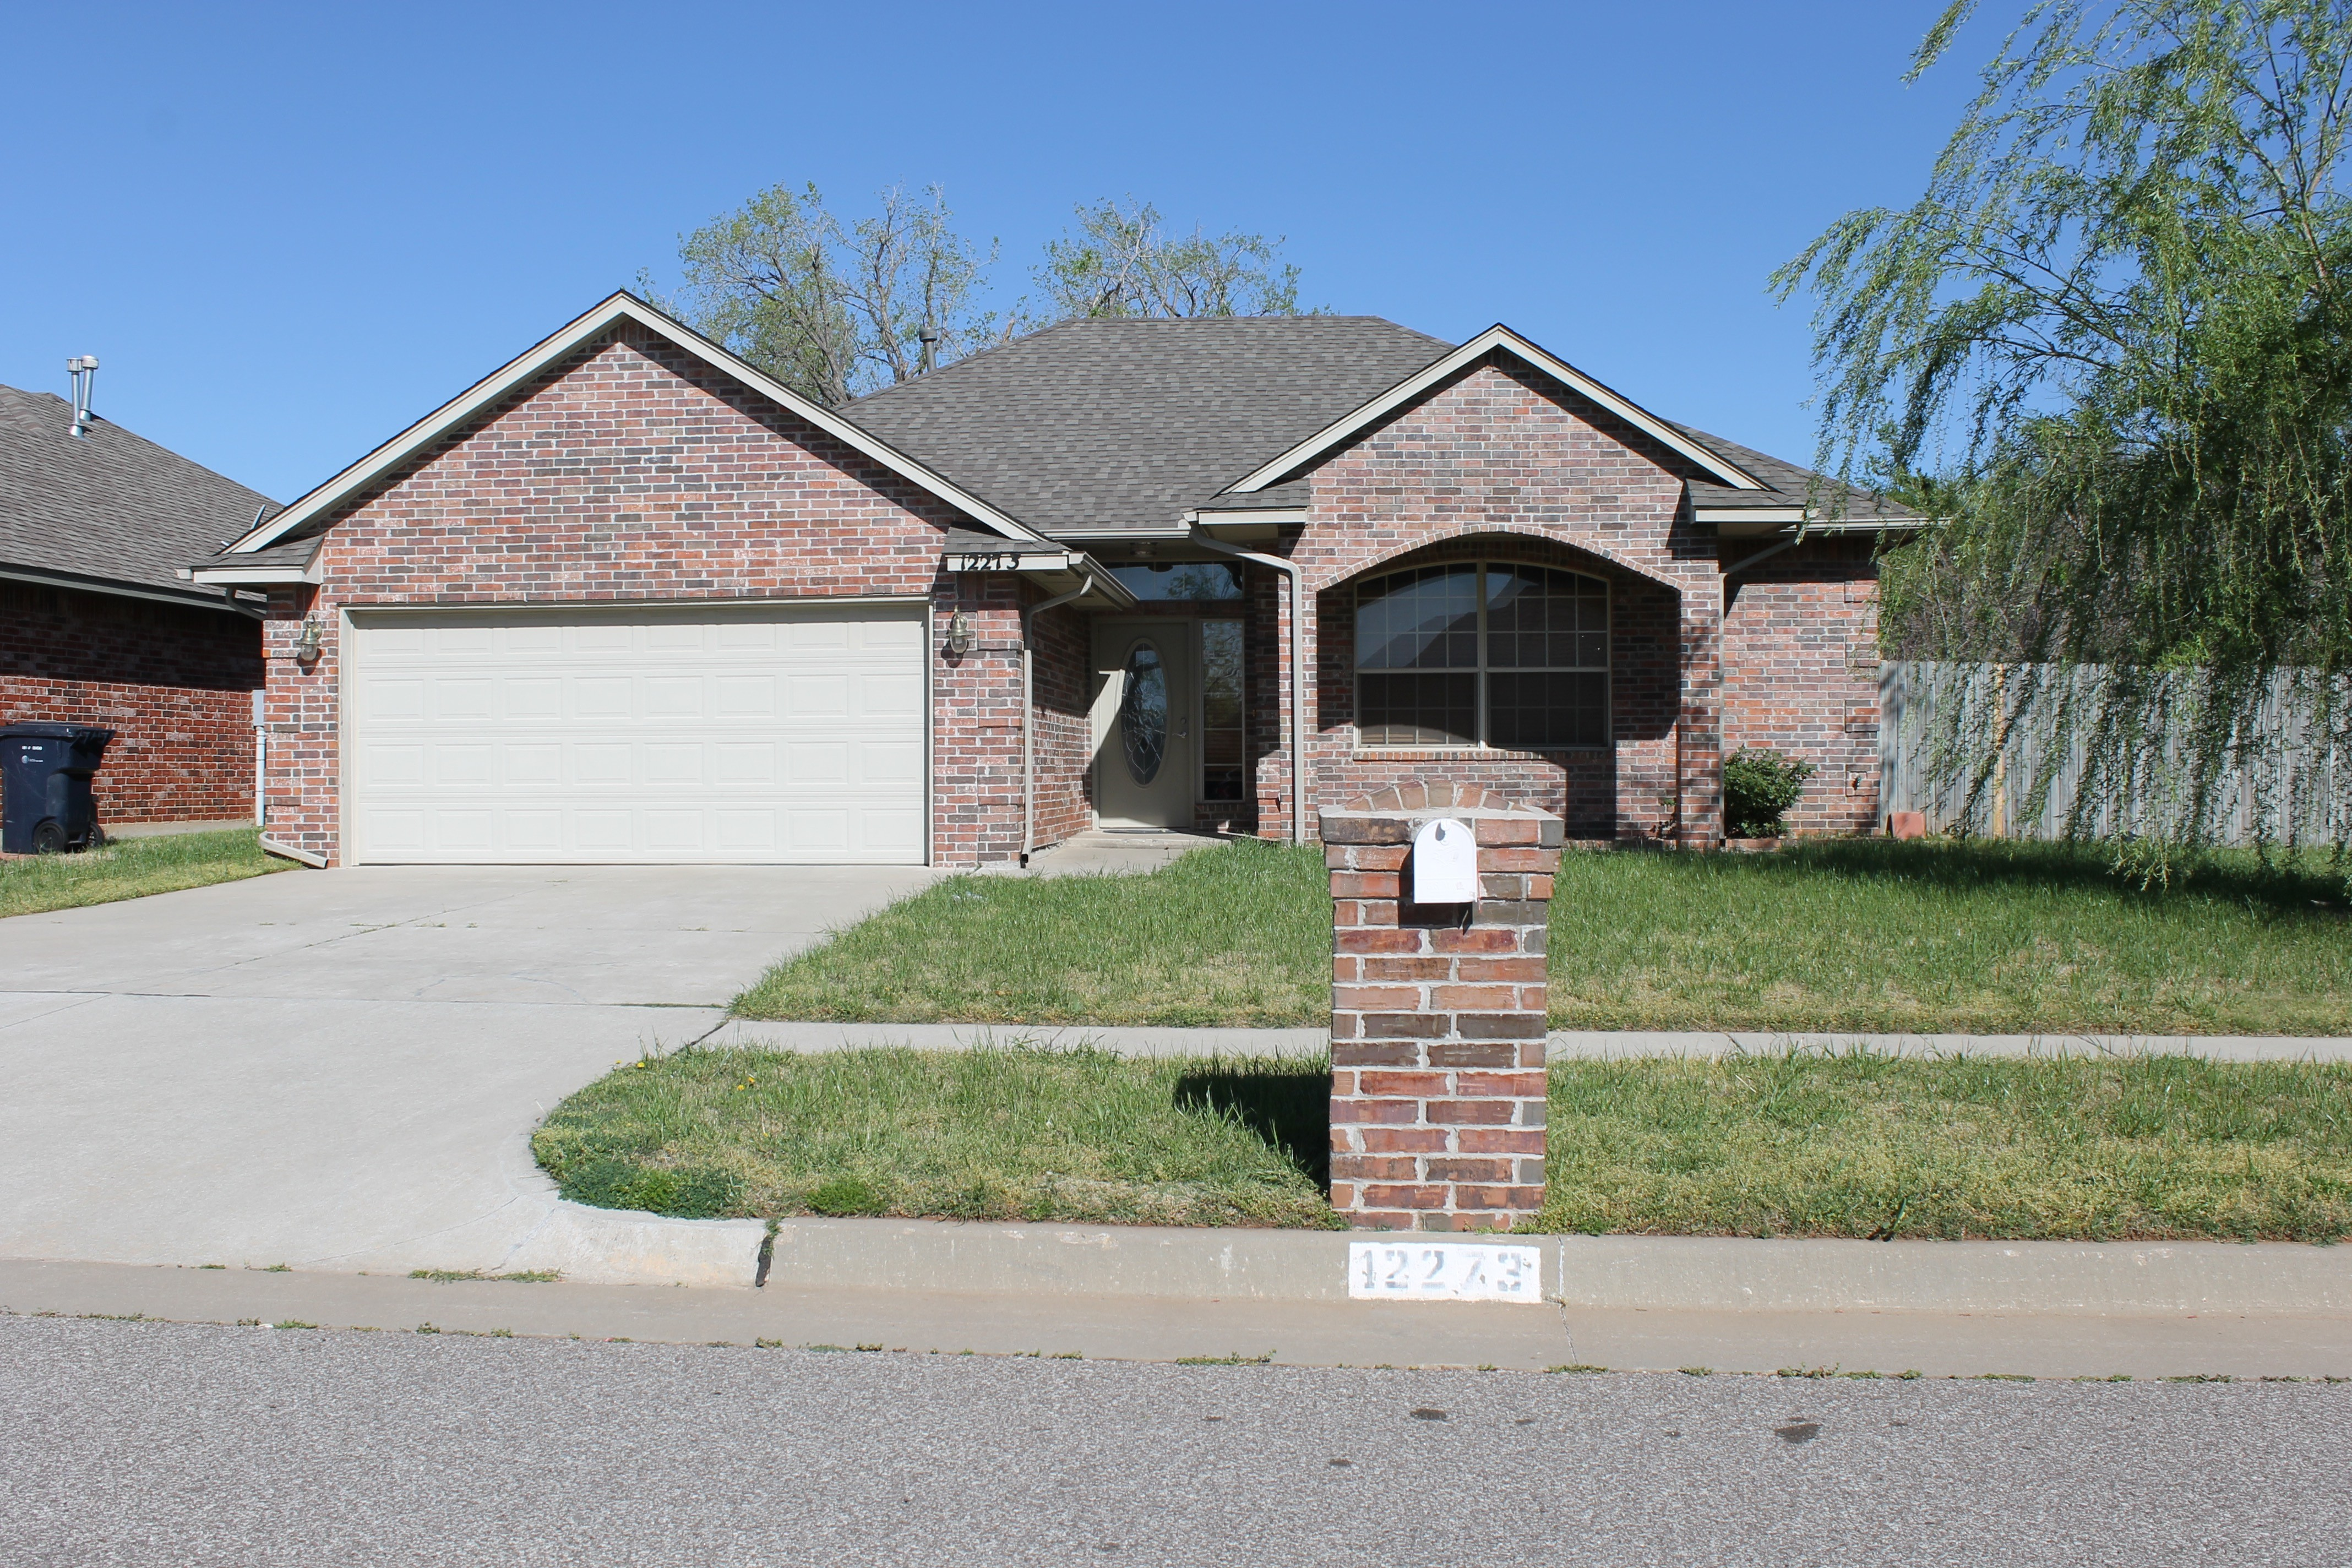 12273 Sw 9th St Oklahoma City Ok 73099 3 Bedroom Apartment For Rent For 1 295 Month Zumper